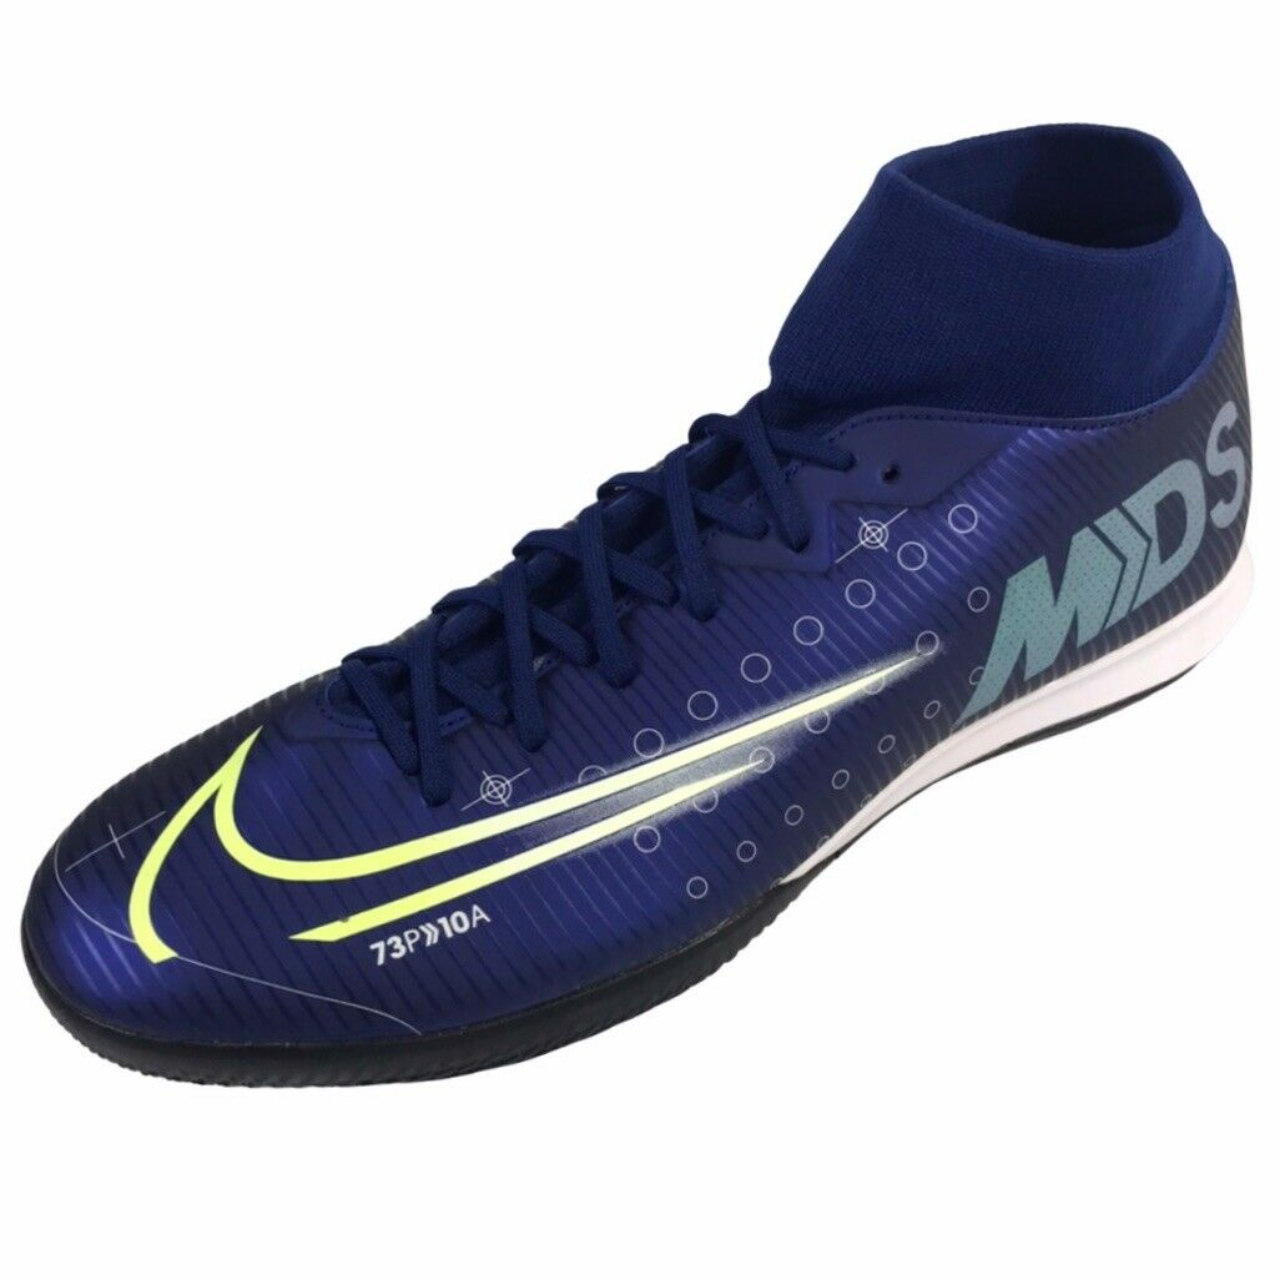 Product Image 1 - Title:Nike Mercurial Superfly 7 Academy